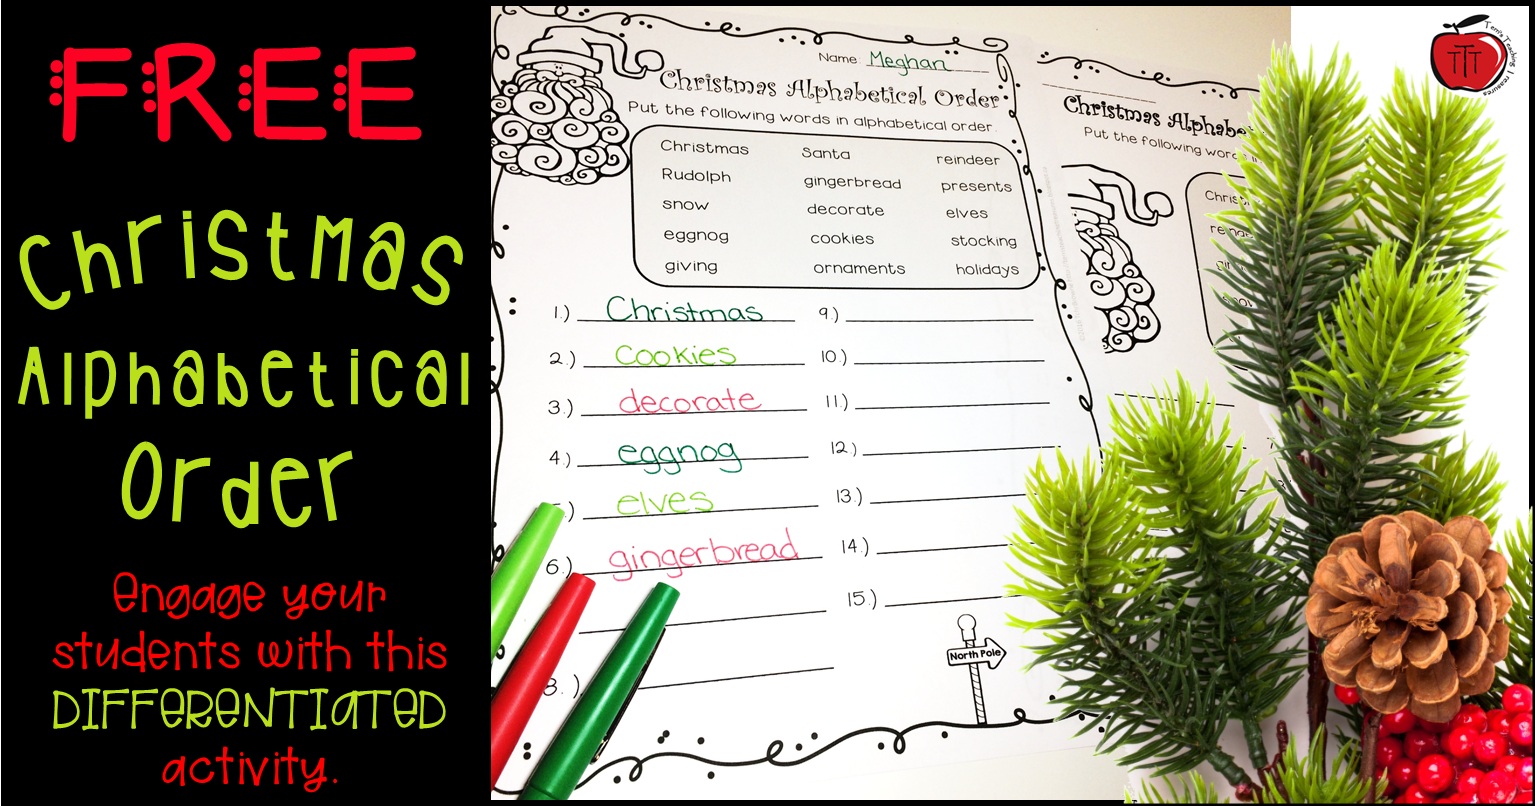 Free Christmas Alphabetical Order Worksheets - Classroom